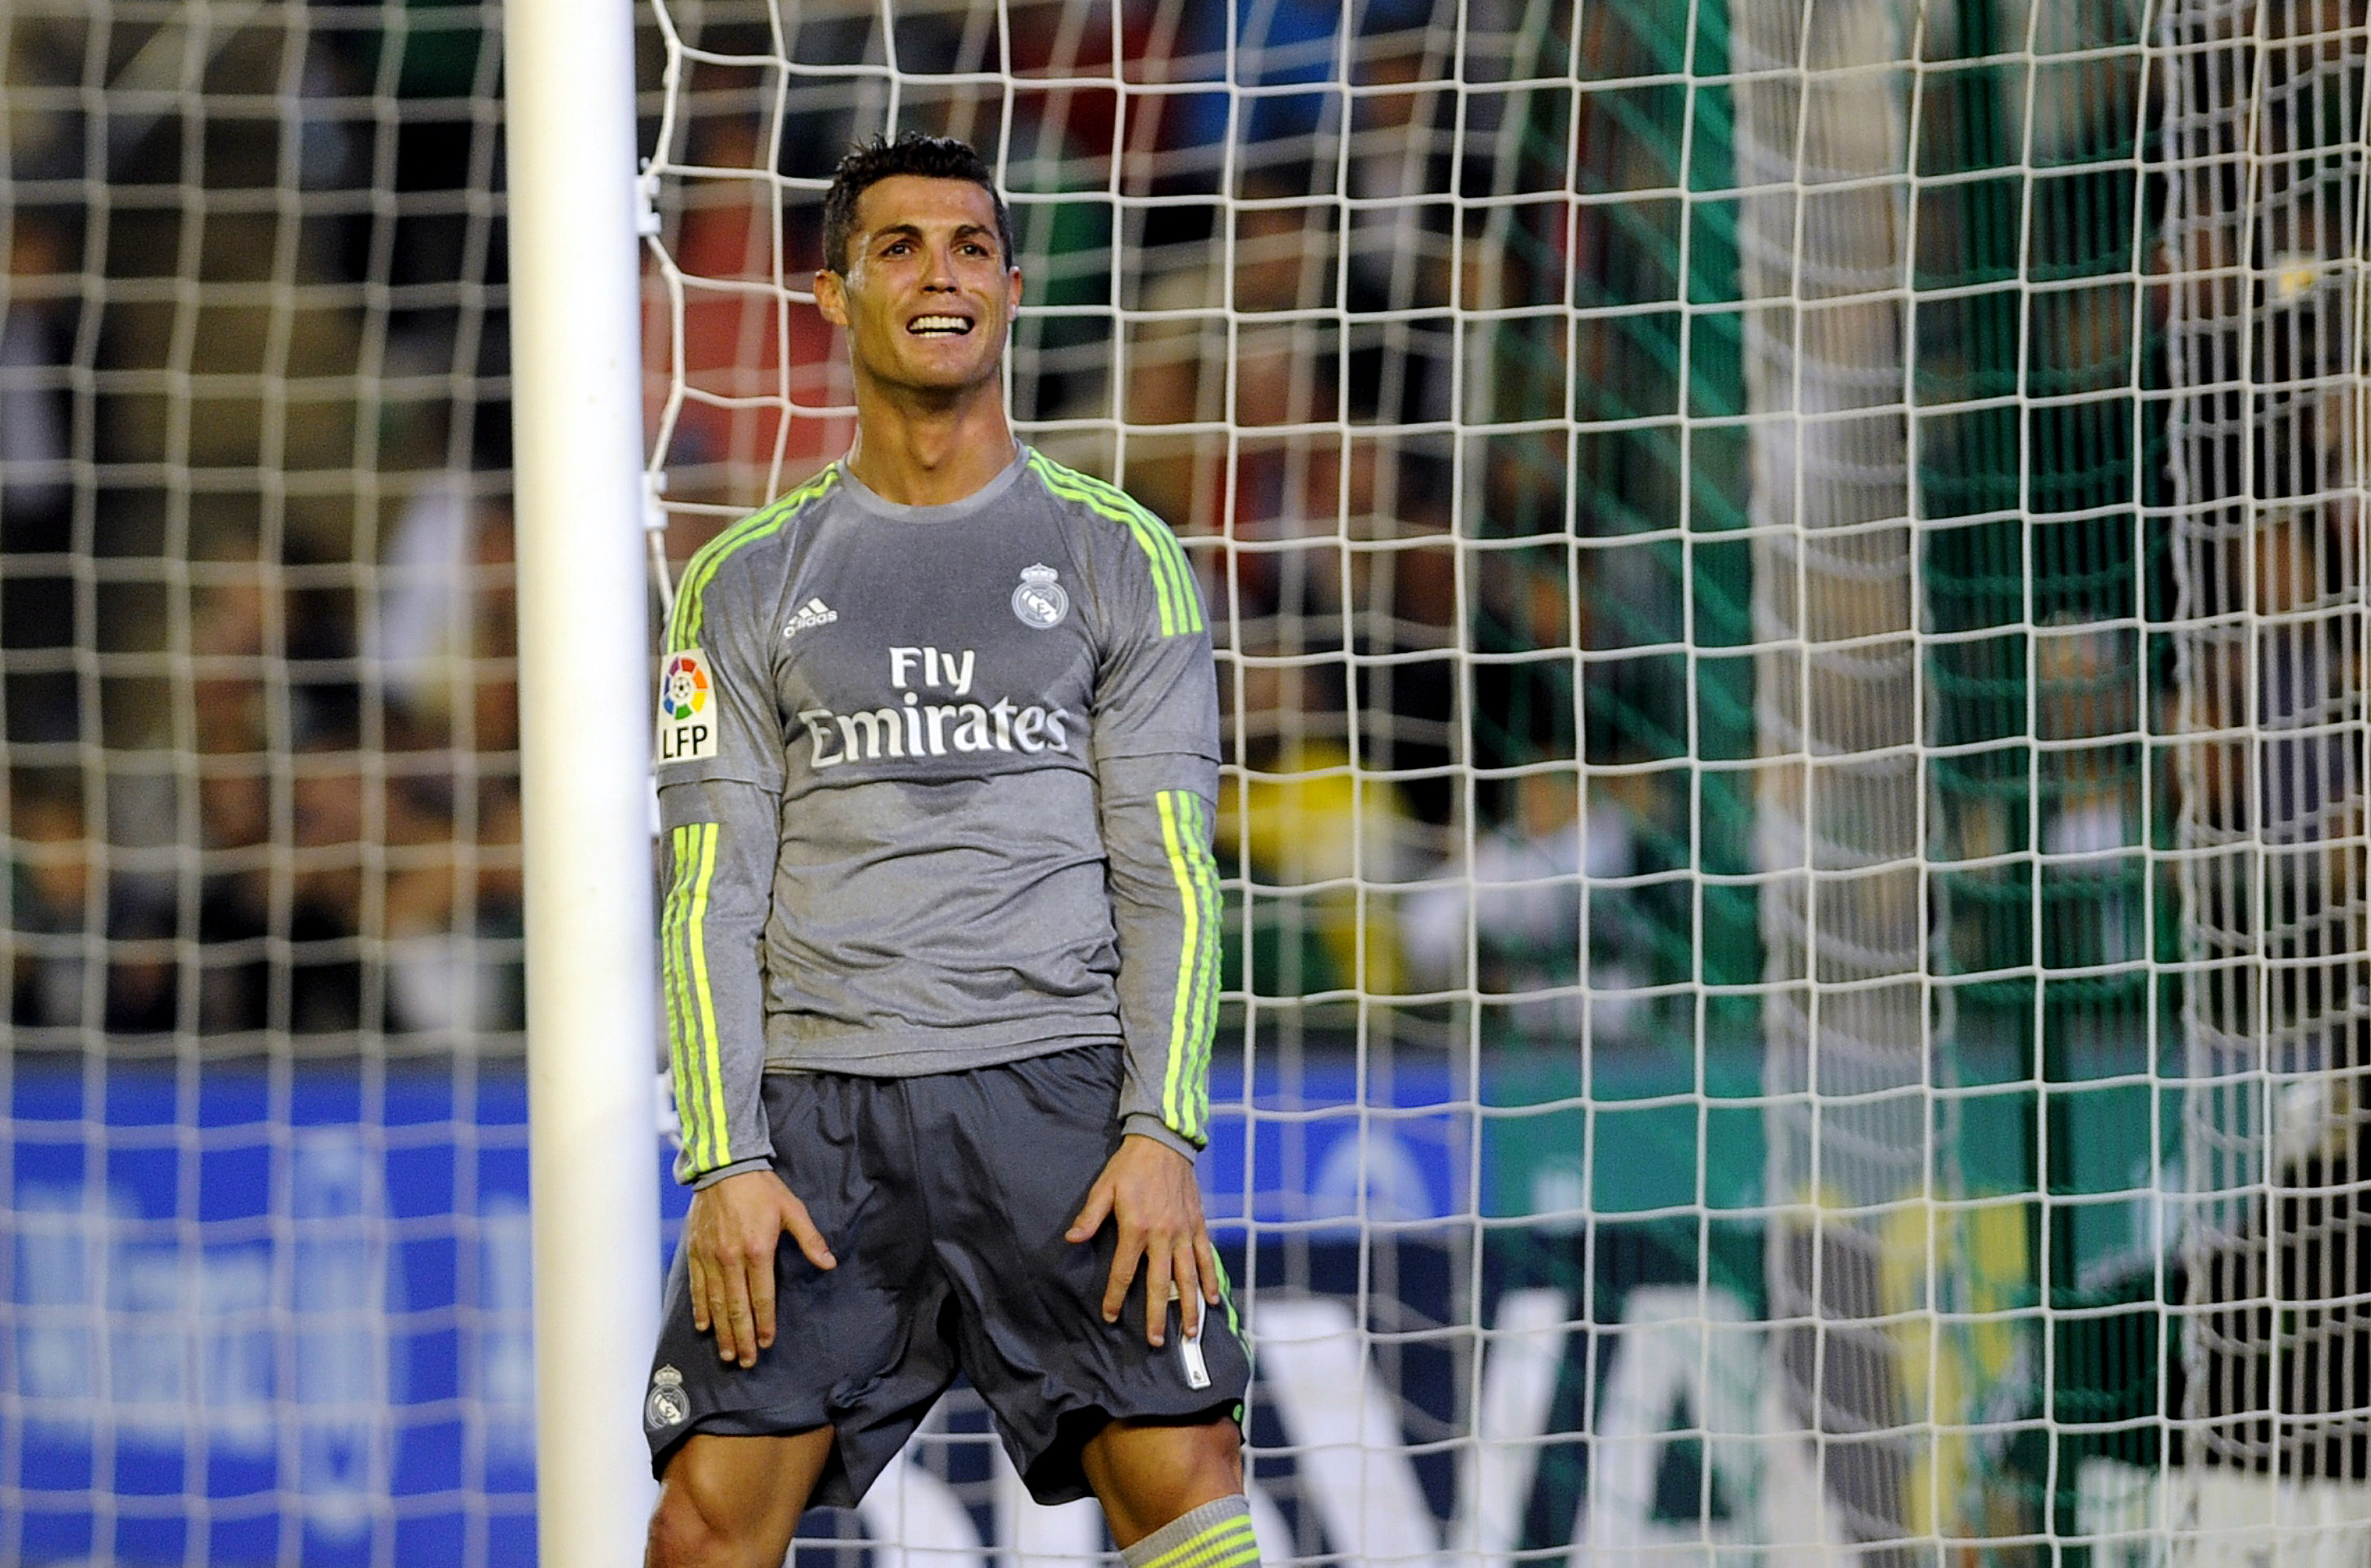 Real Madrid , Real Madrid Espanyol, Real Madrid lineup, Espanyol lineup, Real Madrid Espanyol lineup, Real Madrid stream, online, channel, when, time, xi, watch, free, live, Real Madrid free stream, Real Madrid live online